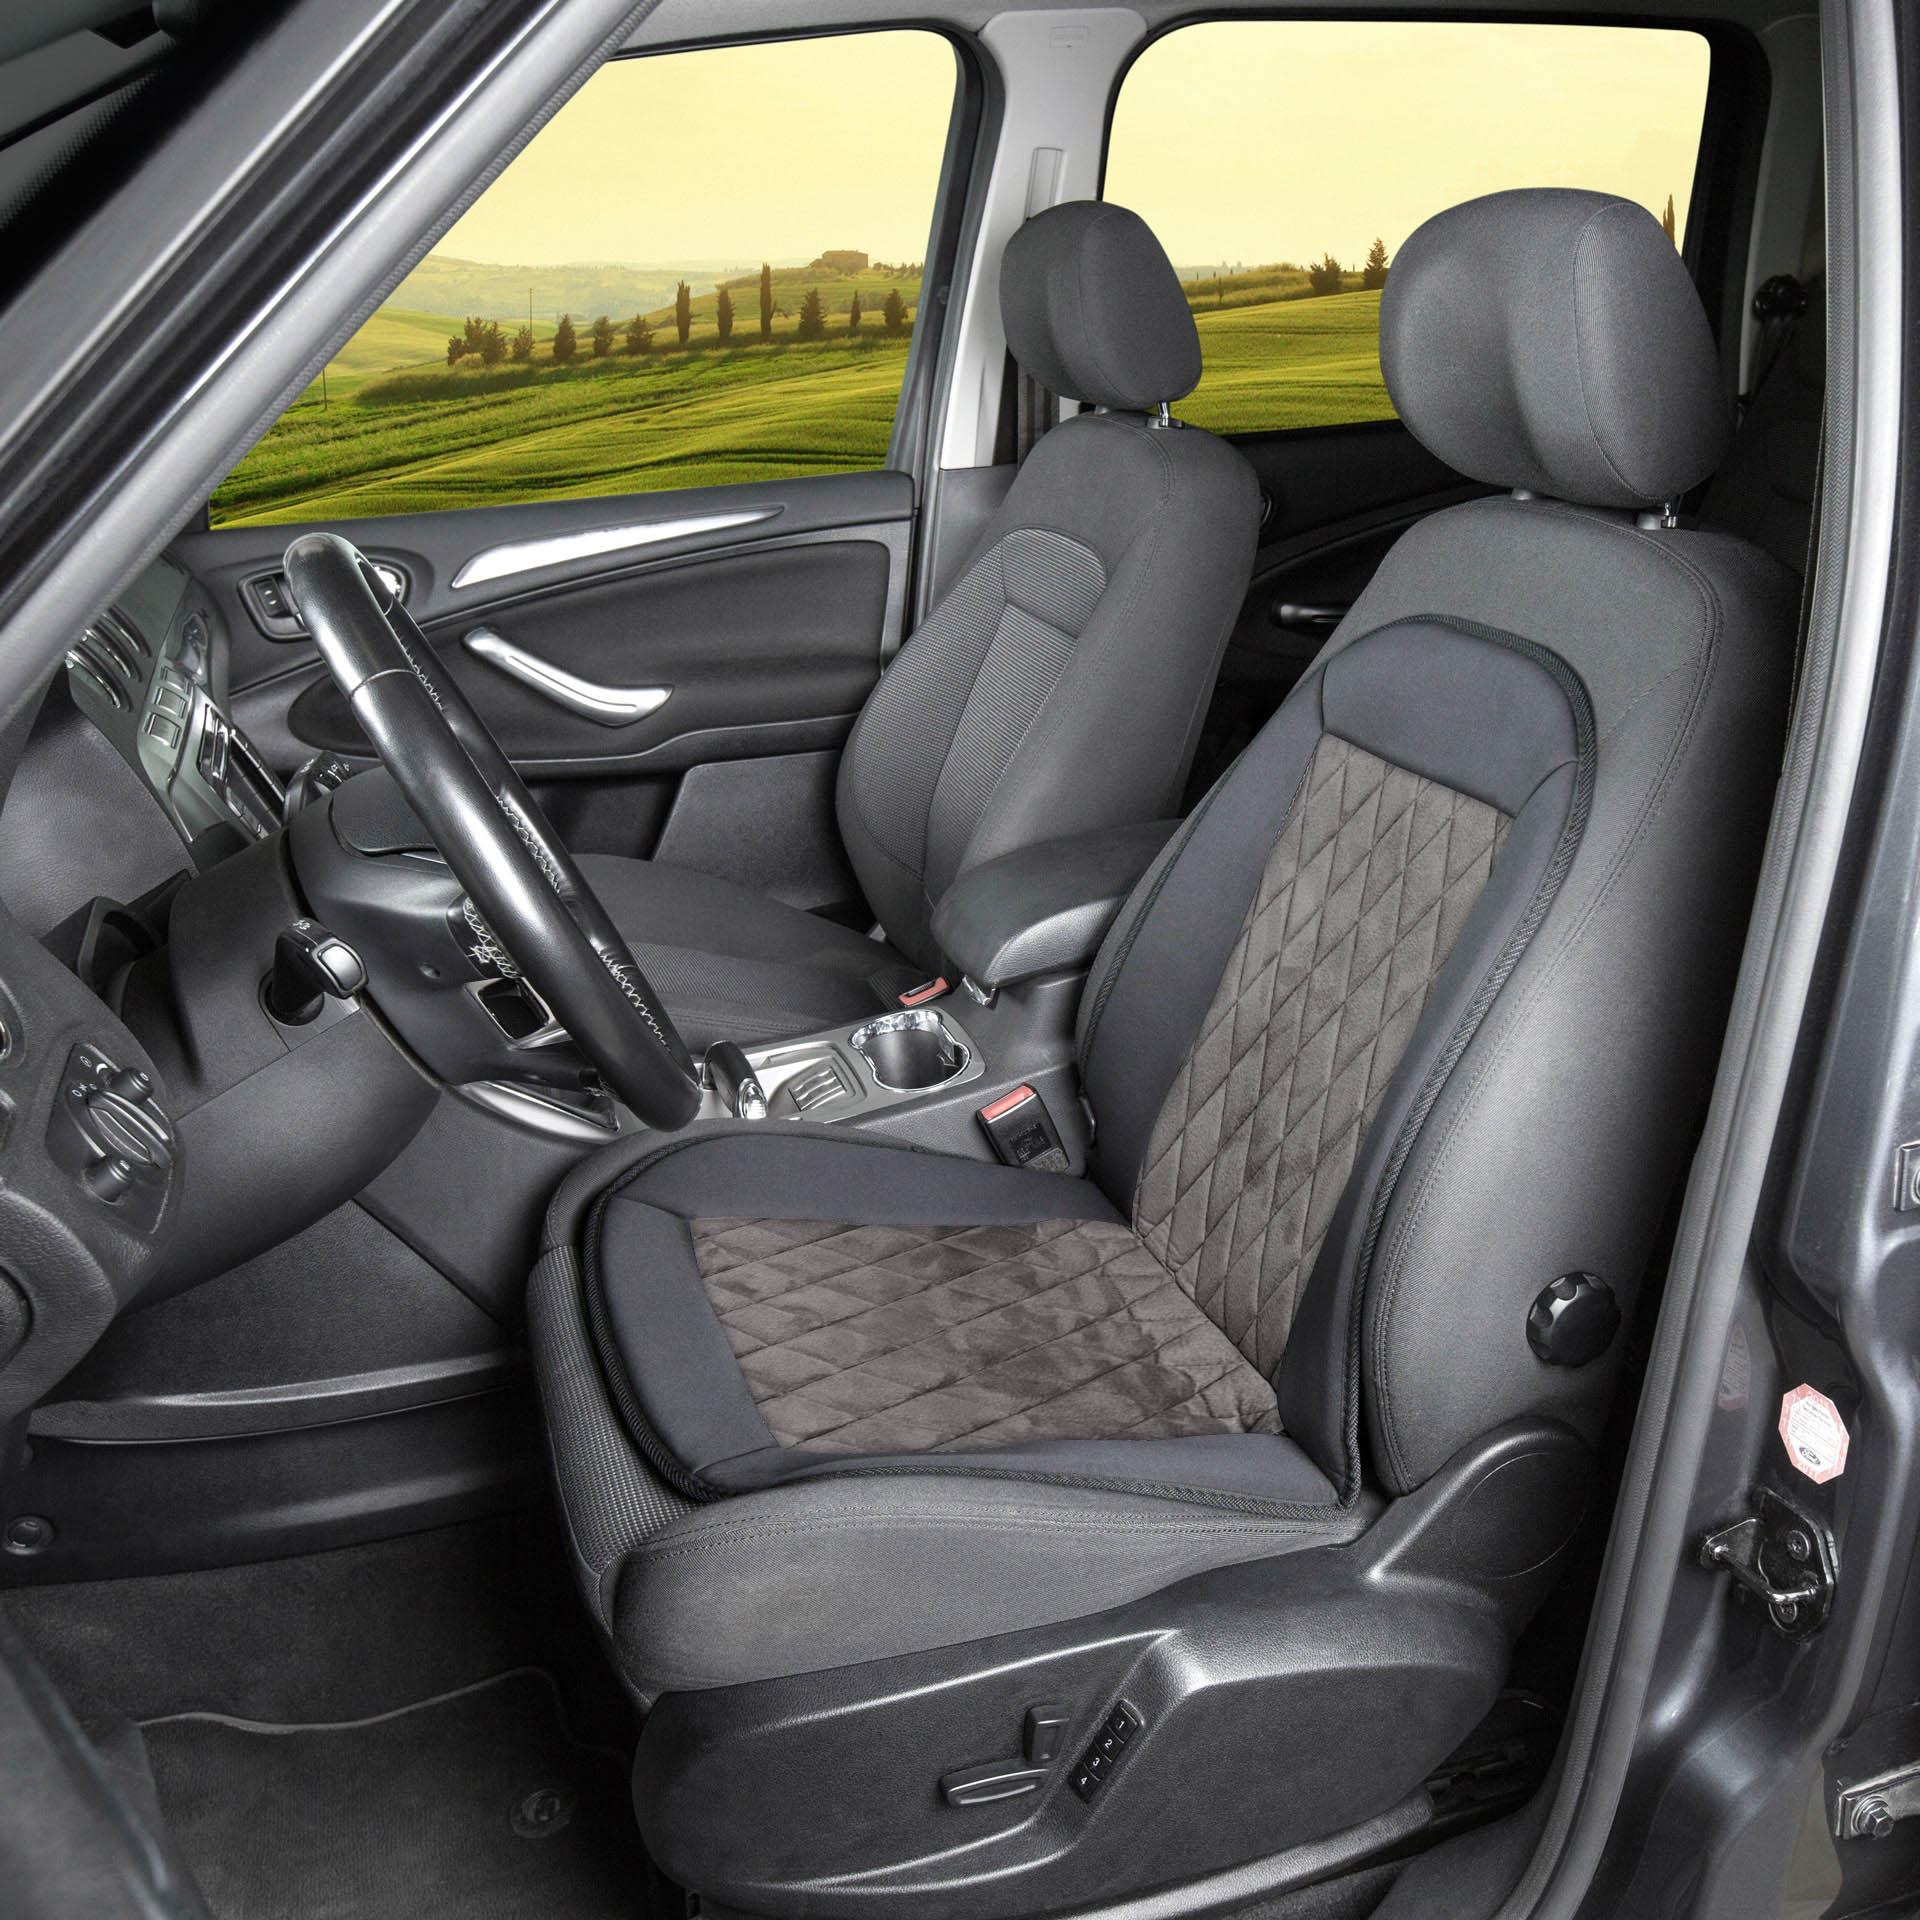 Heated Seat Cover WALSER 16763 rating